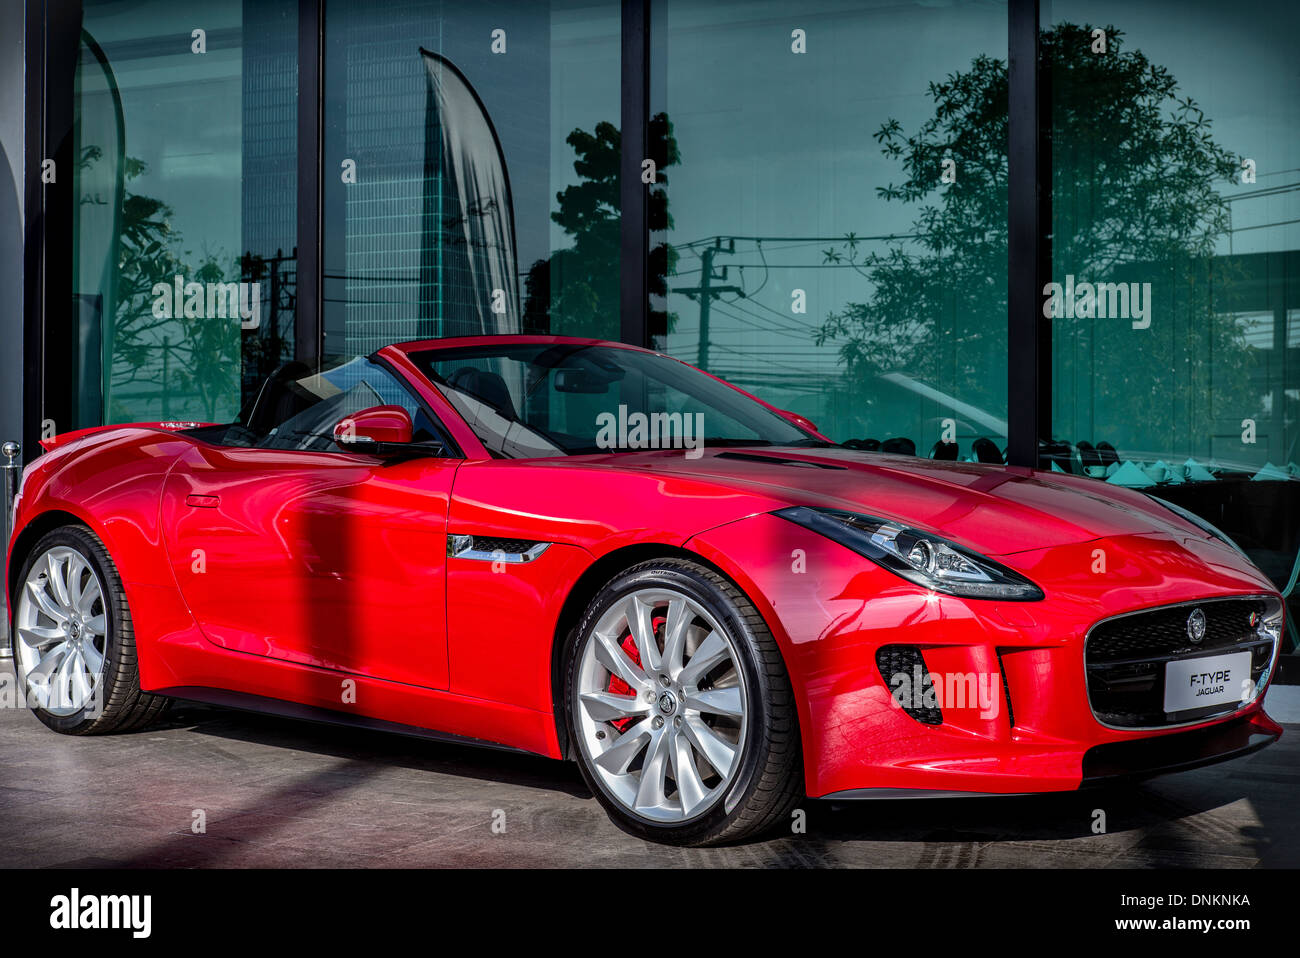 Full length side view of a red Jaguar F type British convertible sports car in red. - Stock Image